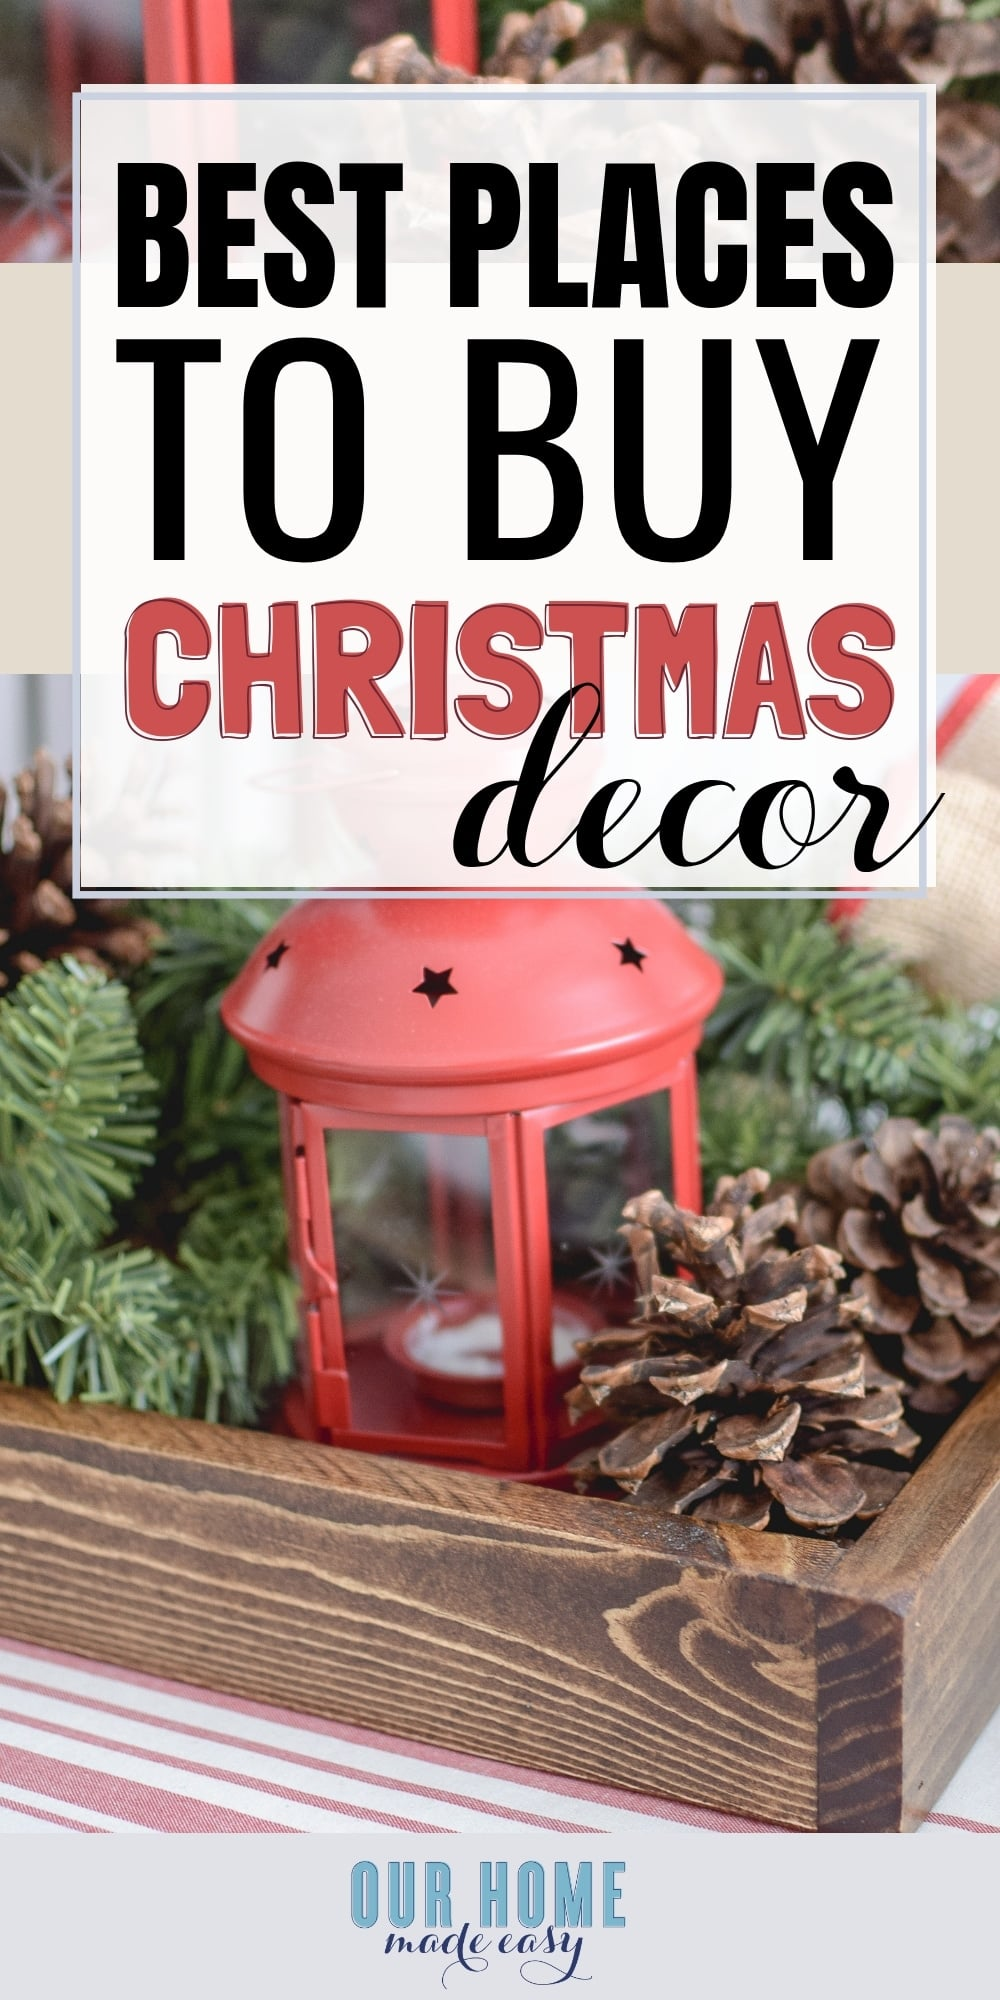 Best Place For Christmas Decorations The 20 Best Places To Buy Christmas Decorations Our Home Made Easy